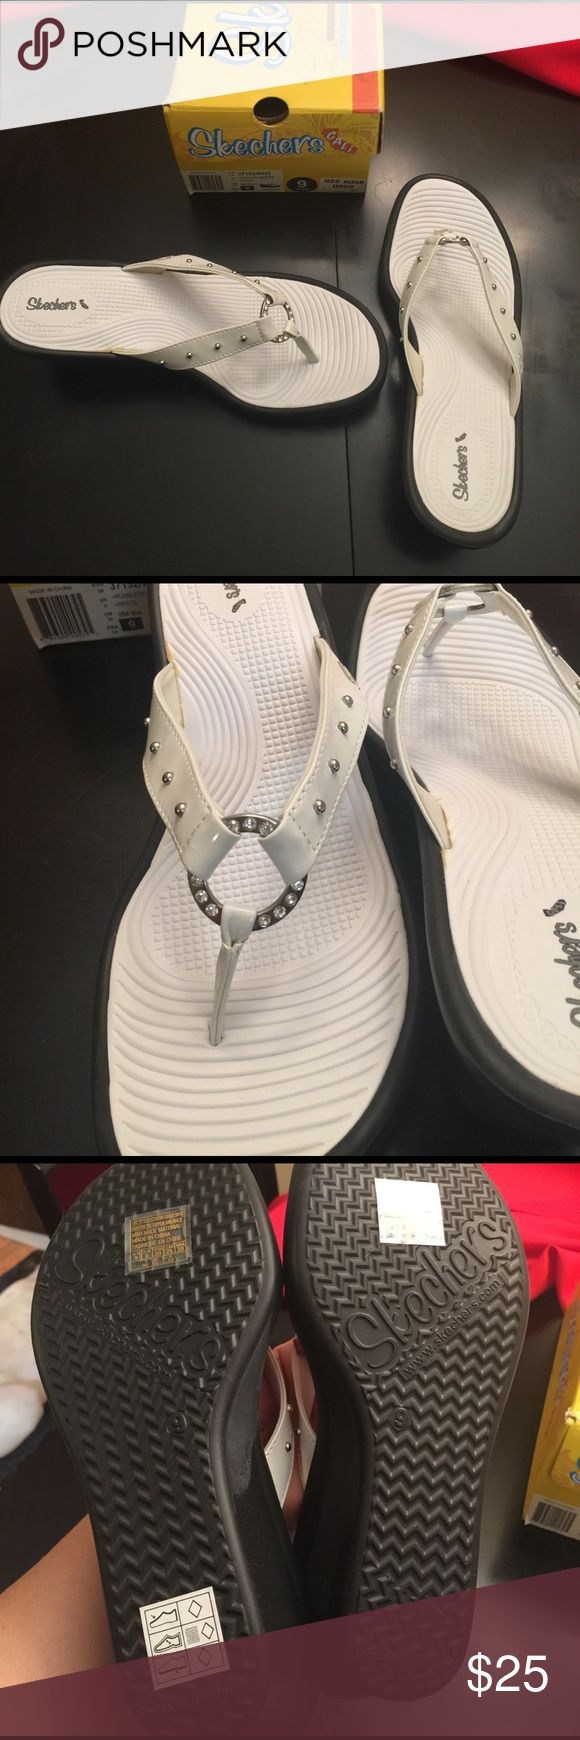 White Skechers wedge sandals Whit with black wedge sandals by sketchers. Rhinestones and stud details. Size 9. NWT Skechers Shoes Sandals